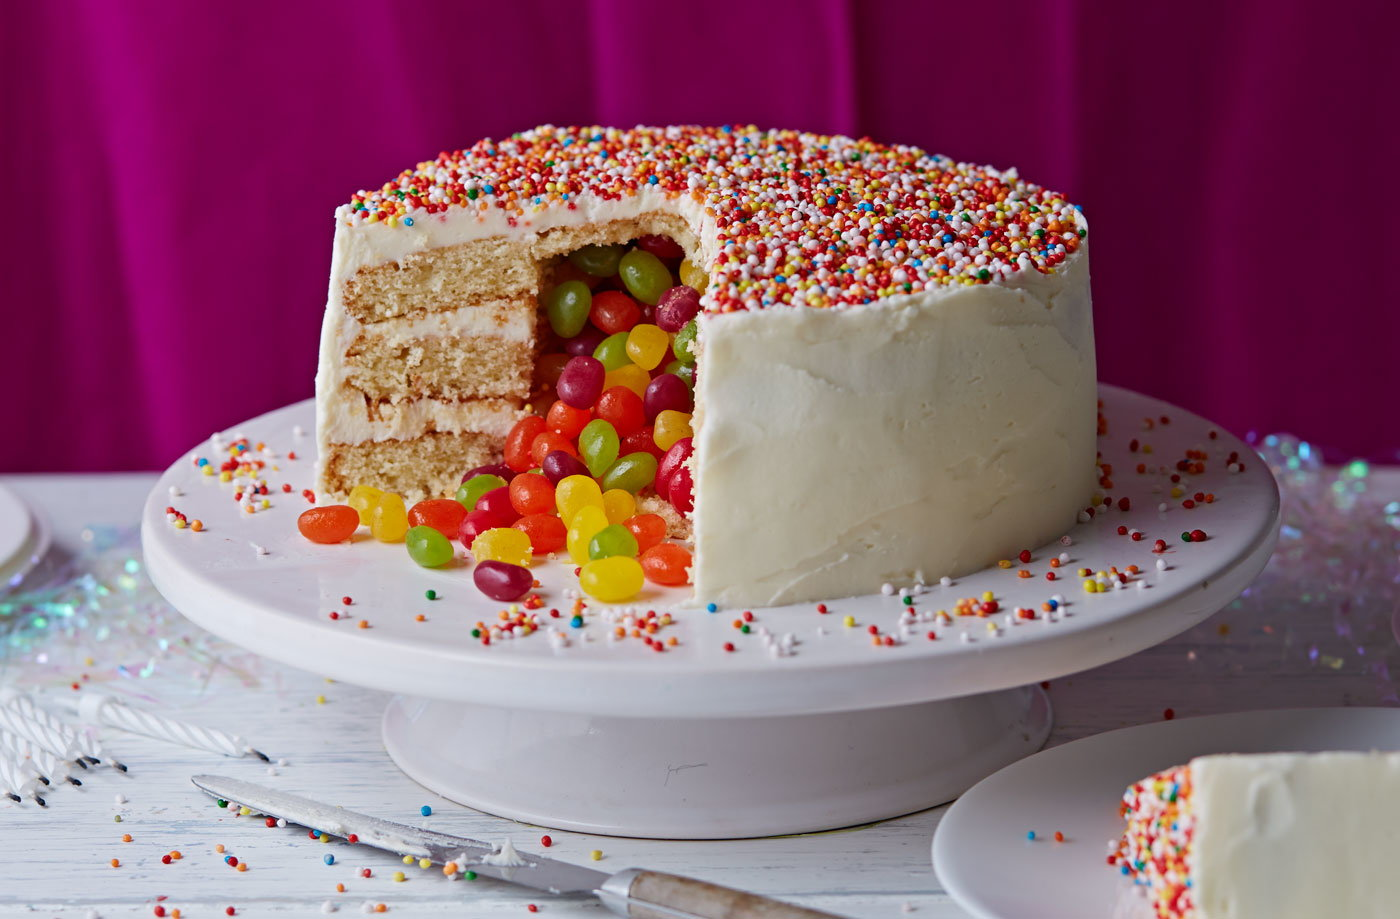 Surprise Pinata Cake